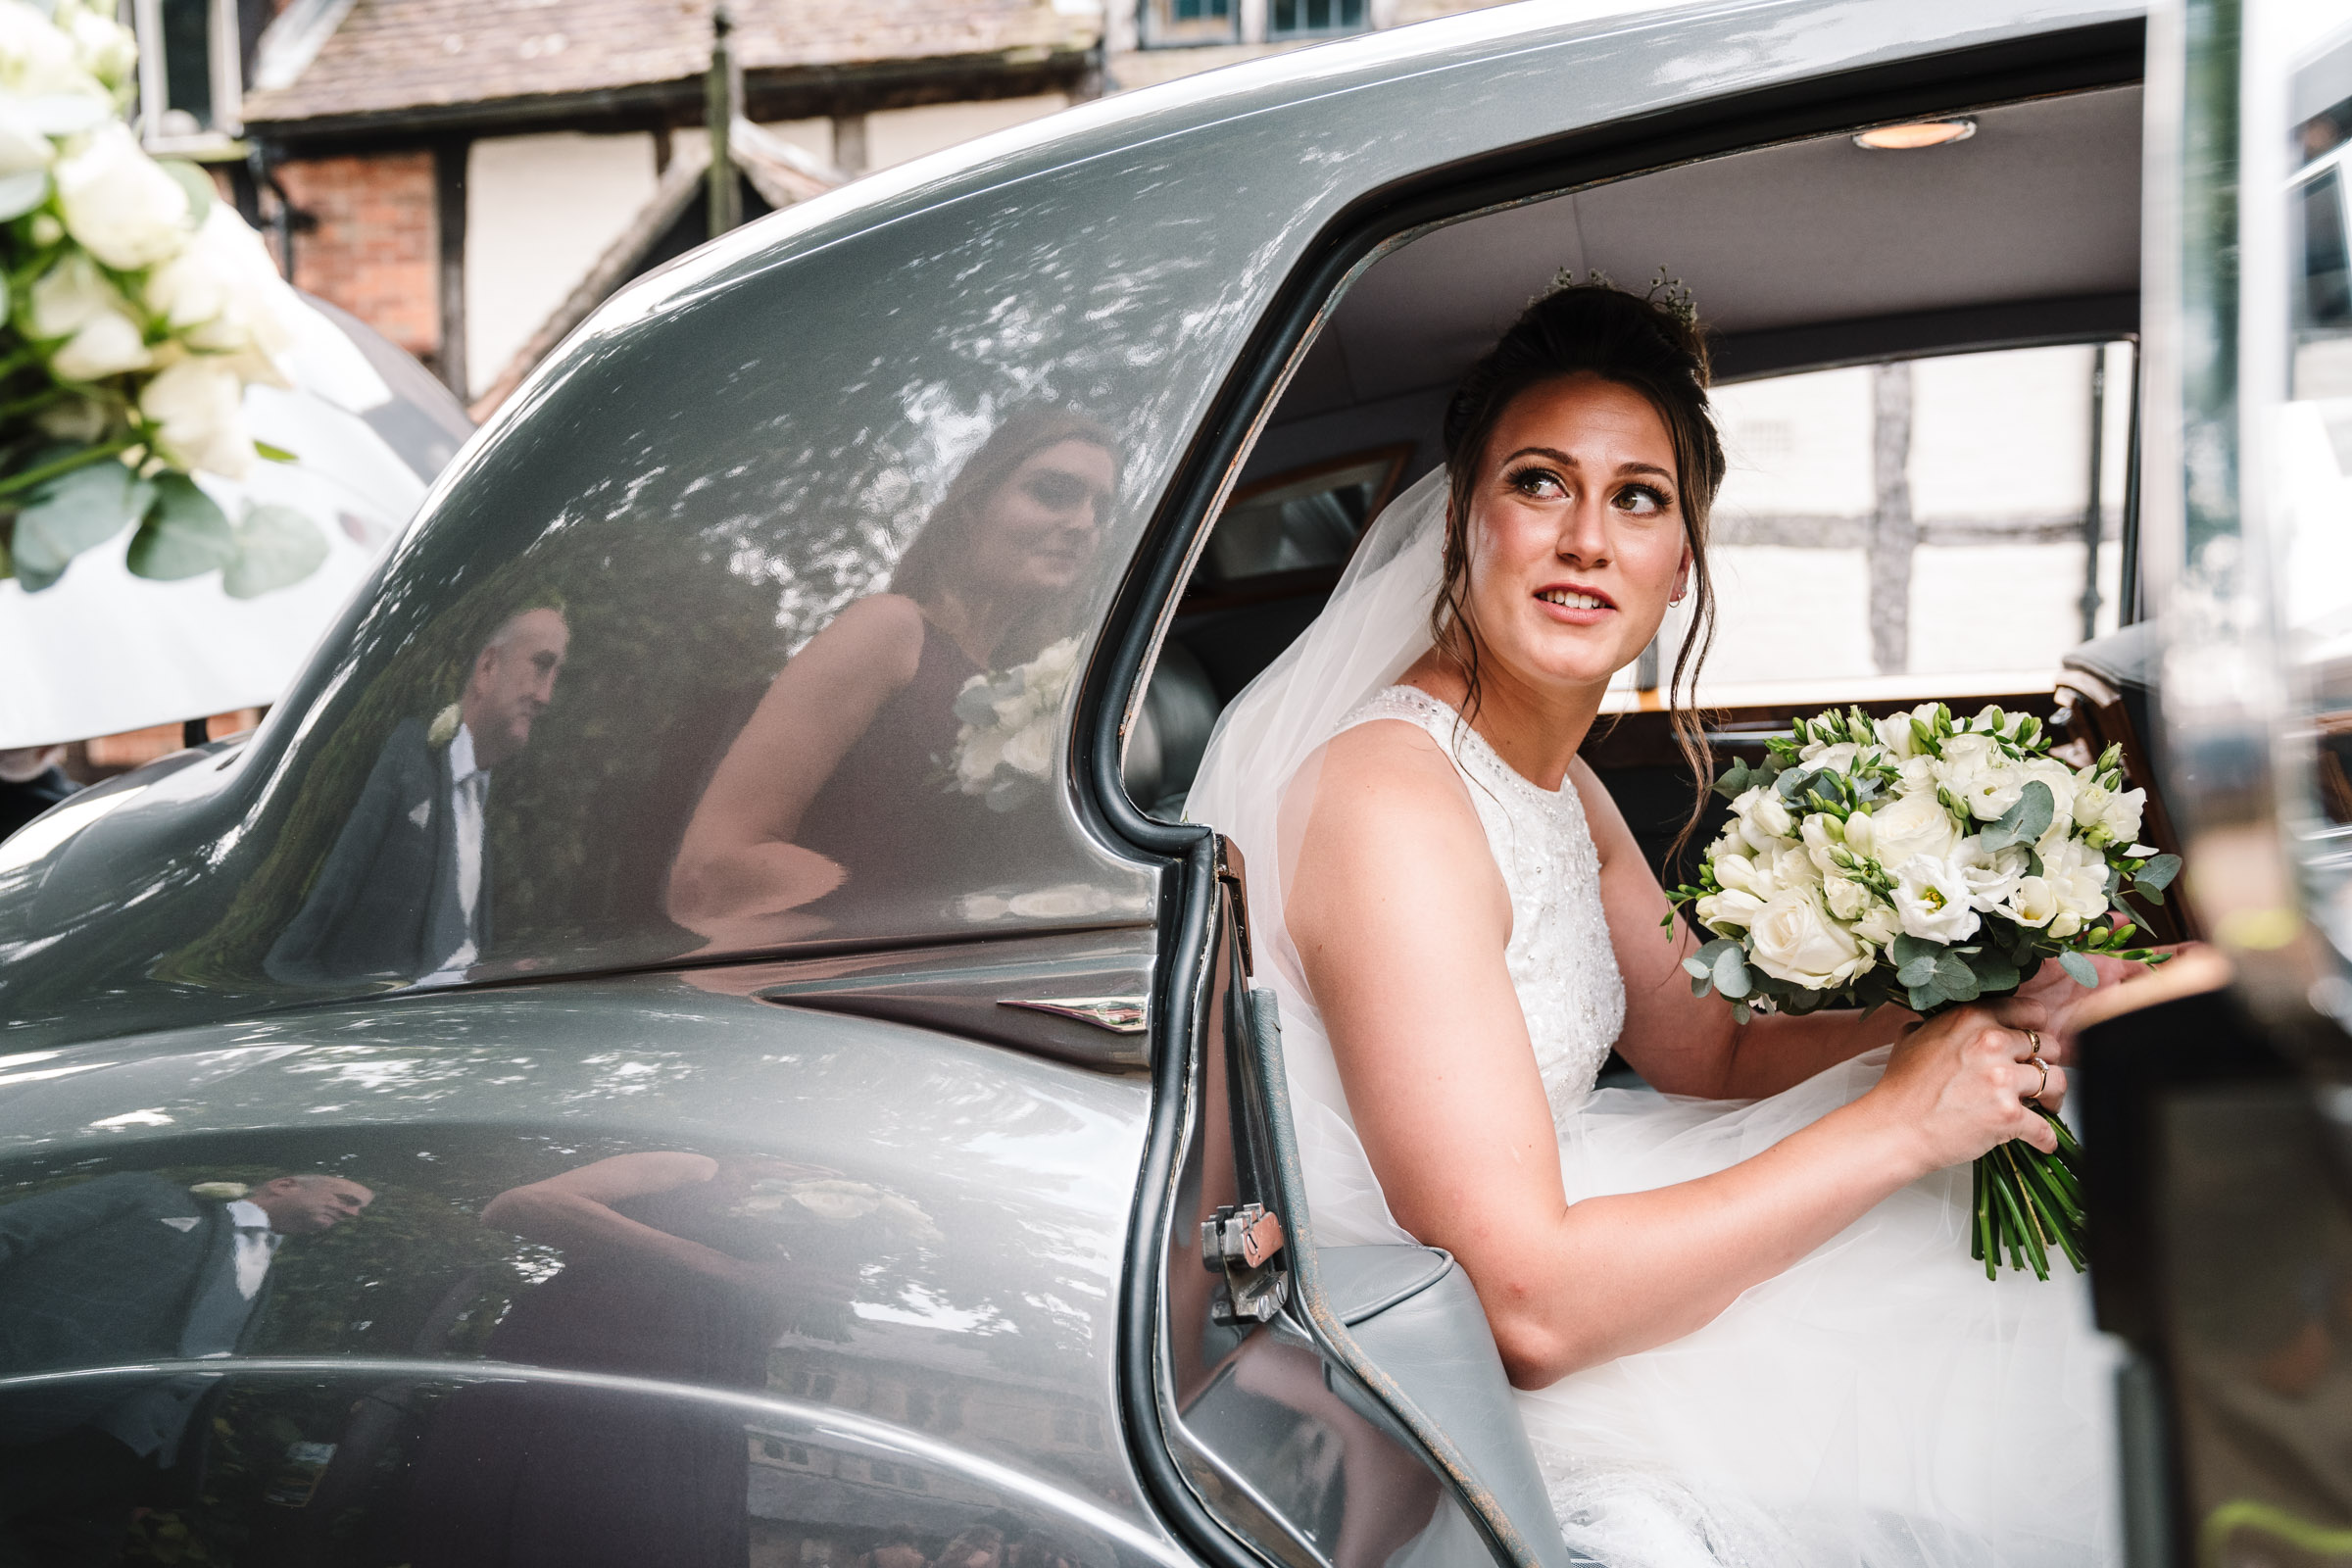 bride arriving at church, about to get out of wedding car